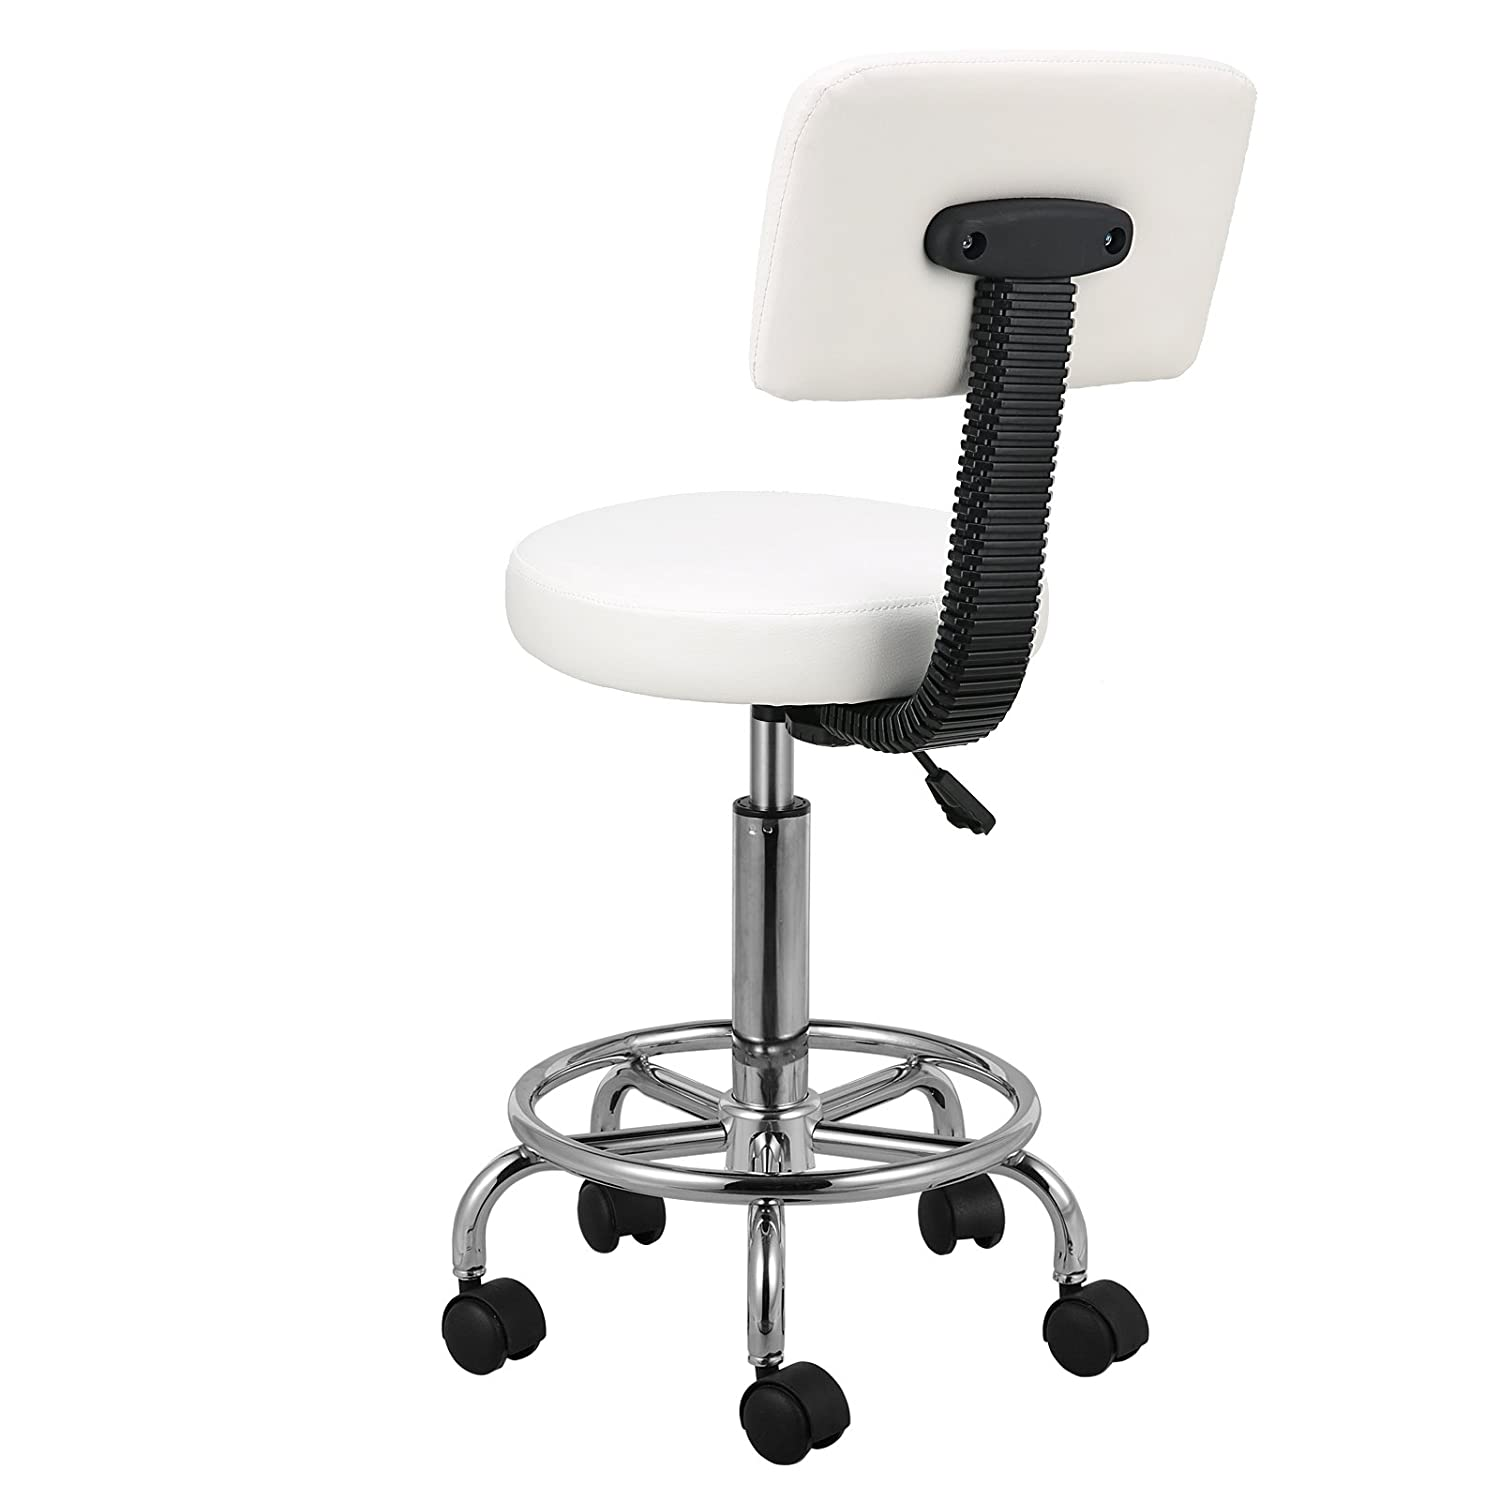 Voilamart Salon Stool Bar Swivel Chair with Back Rest Hydraulic